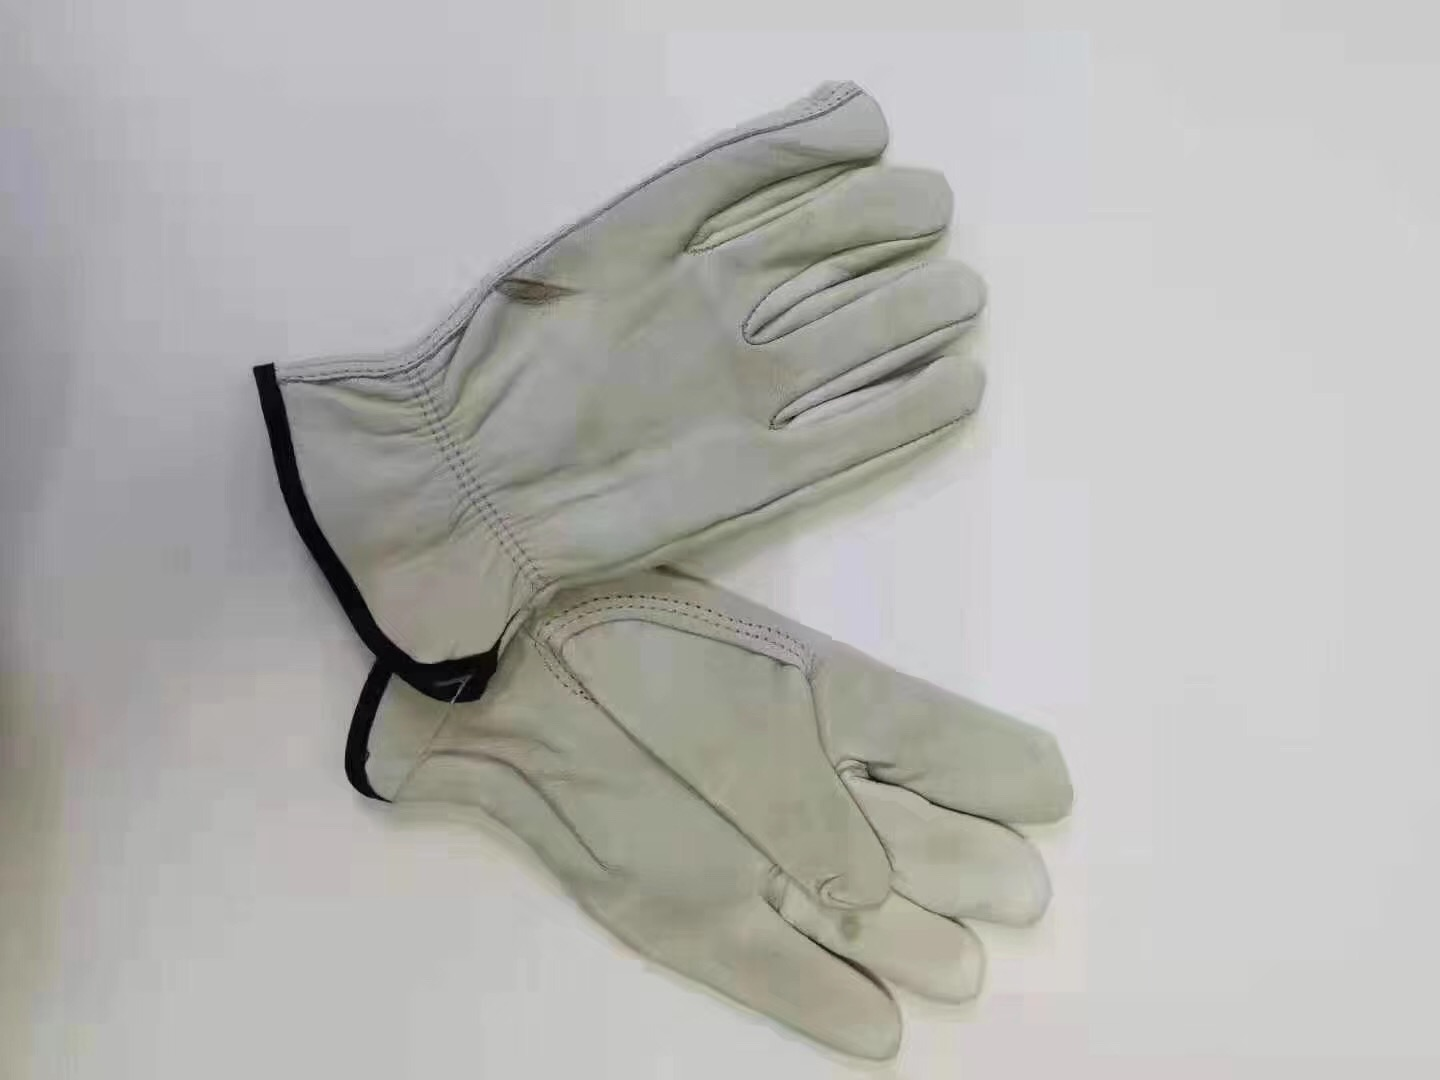 34906 - The cow skin gloves China